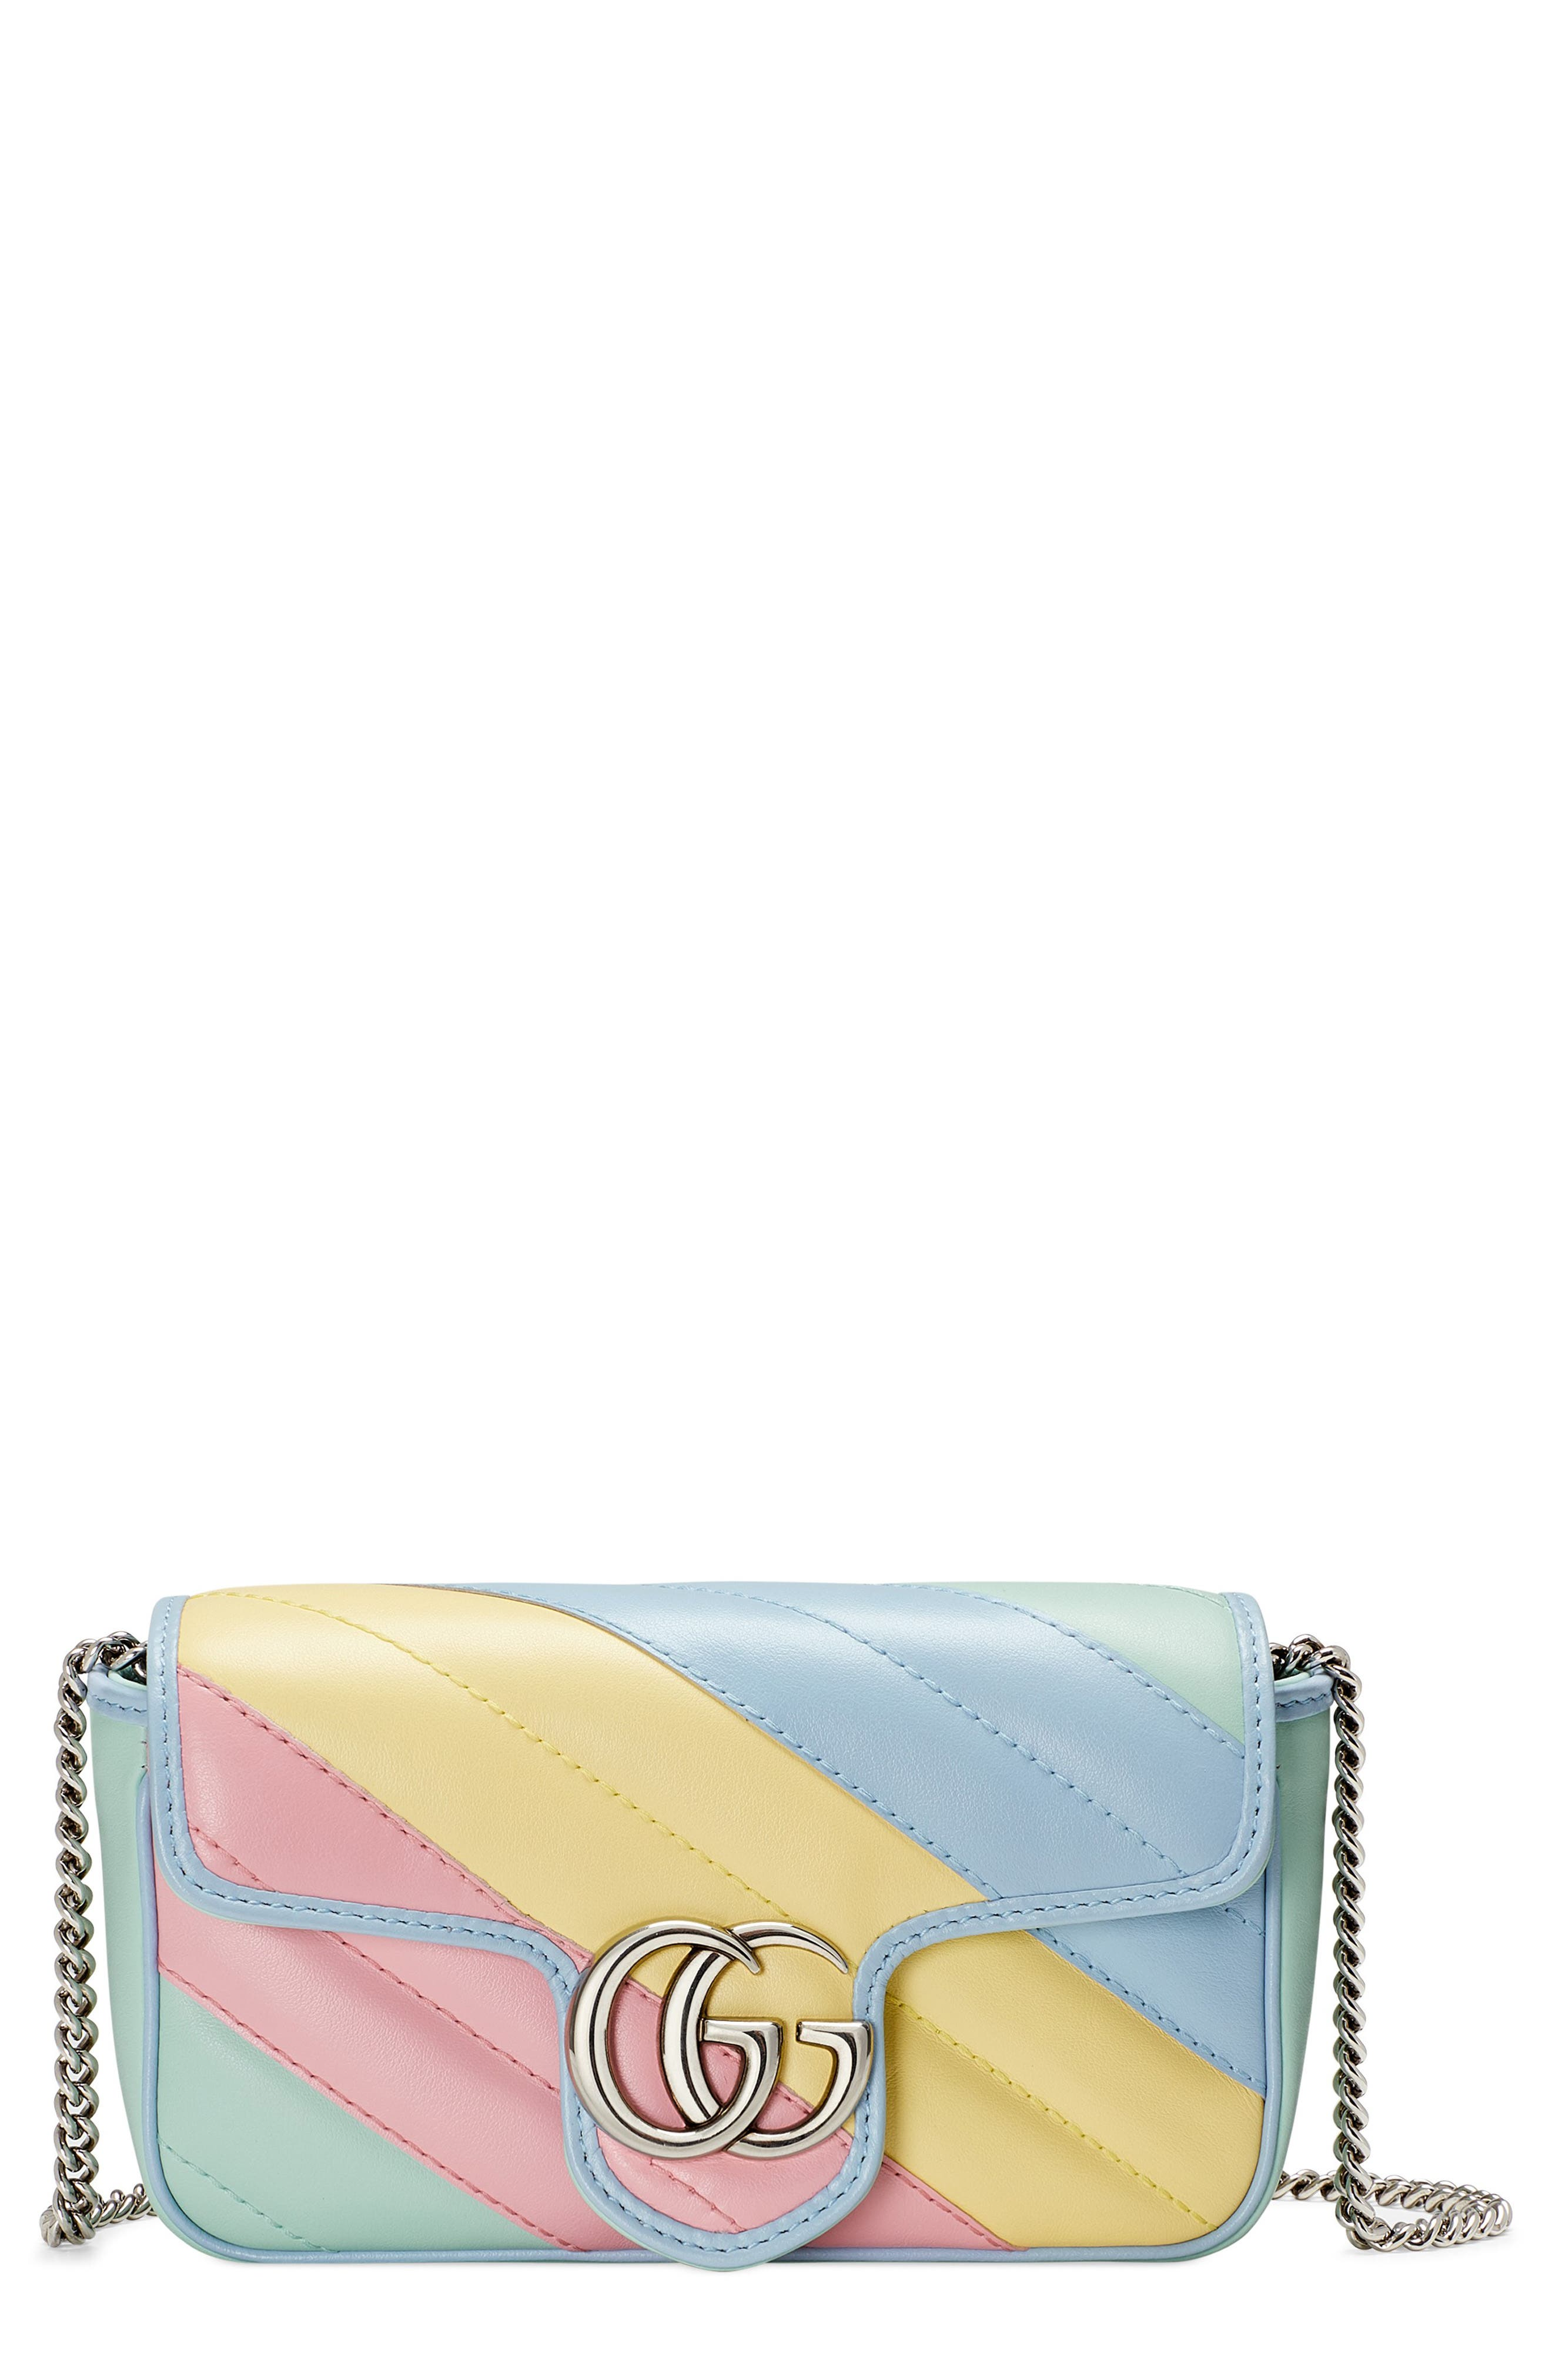 Gucci gives its Marmont bag a charming makeover with dreamy pastel color that plays up the silvertone double-G hardware and dimensional matelasse quilting. An interior key ring is meant for attaching it to a larger bag, or you can remove the chain strap and carry it as a clutch. Style Name: Gucci Super Mini Gg Matelasse Leather Crossbody Bag. Style Number: 6079613. Available in stores.